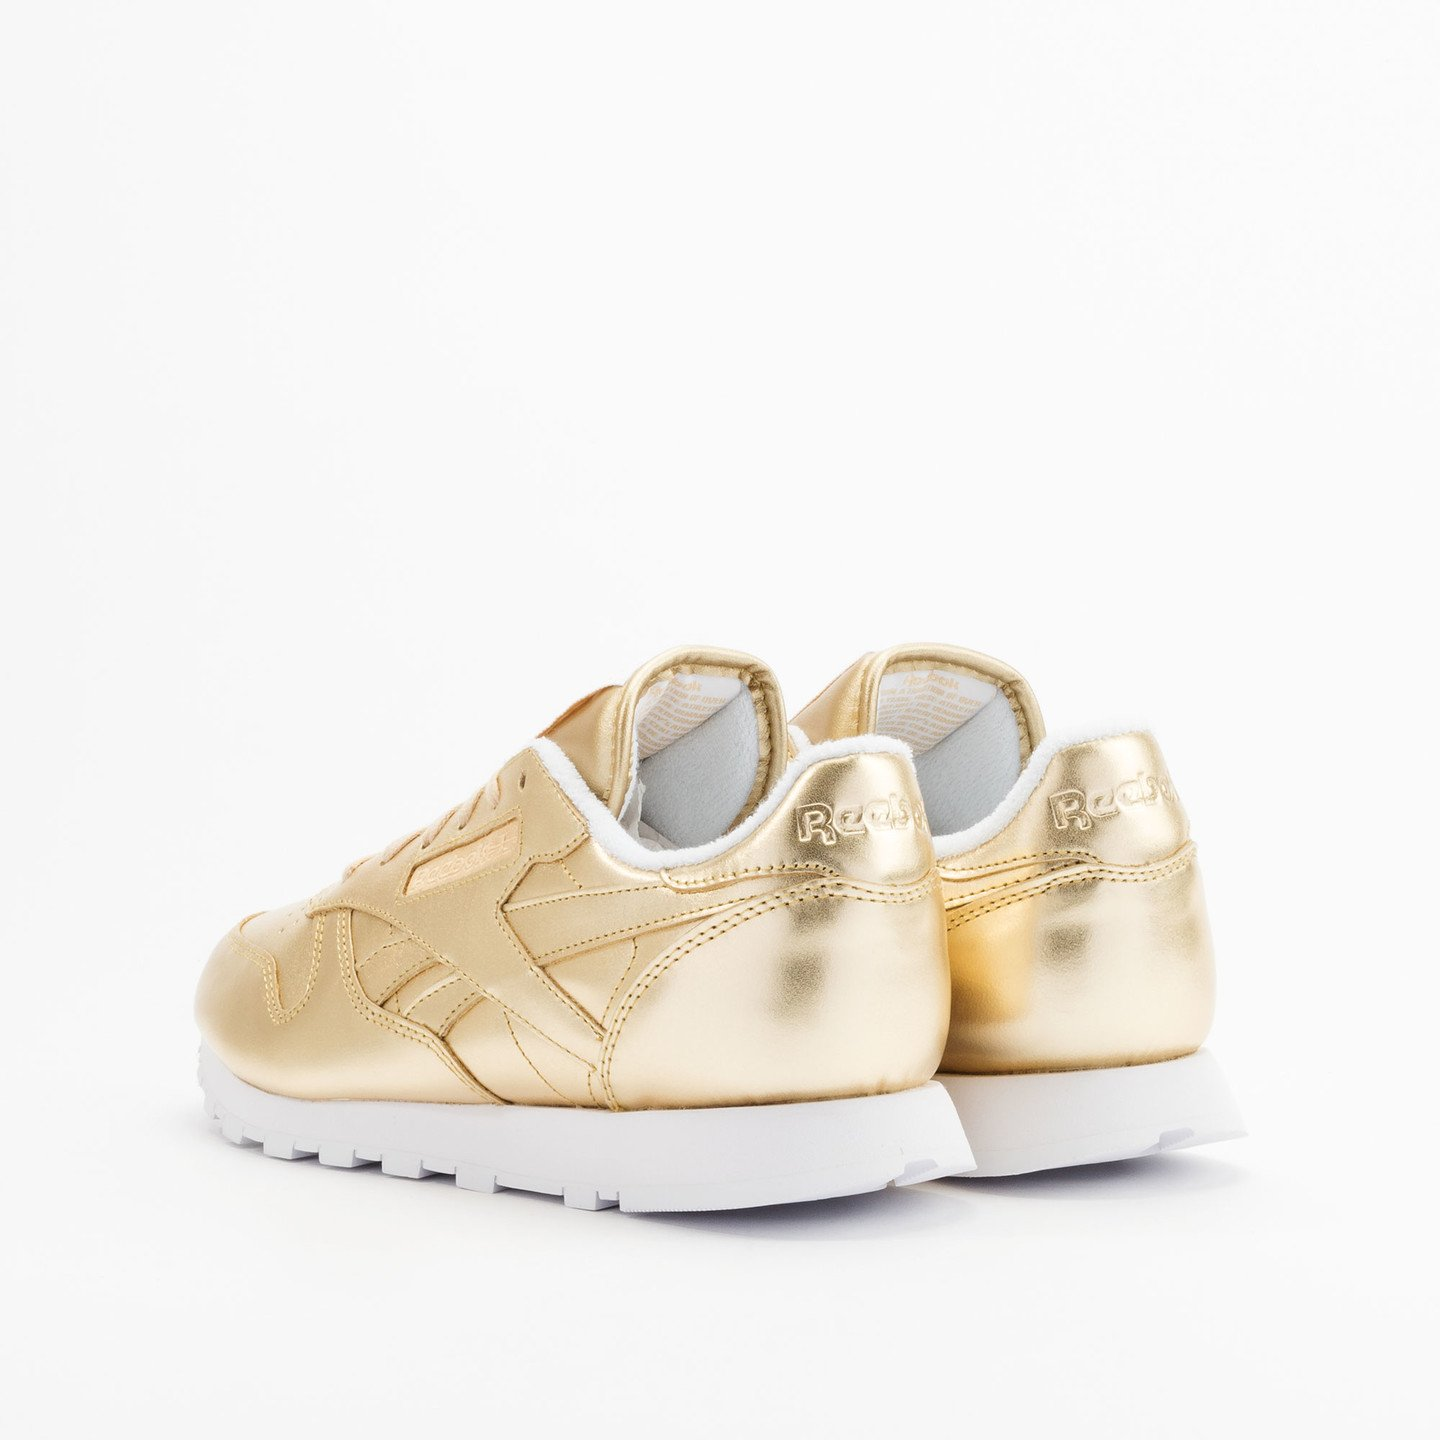 Reebok Classic Leather Spirit Sensation Gold / White V70668-40